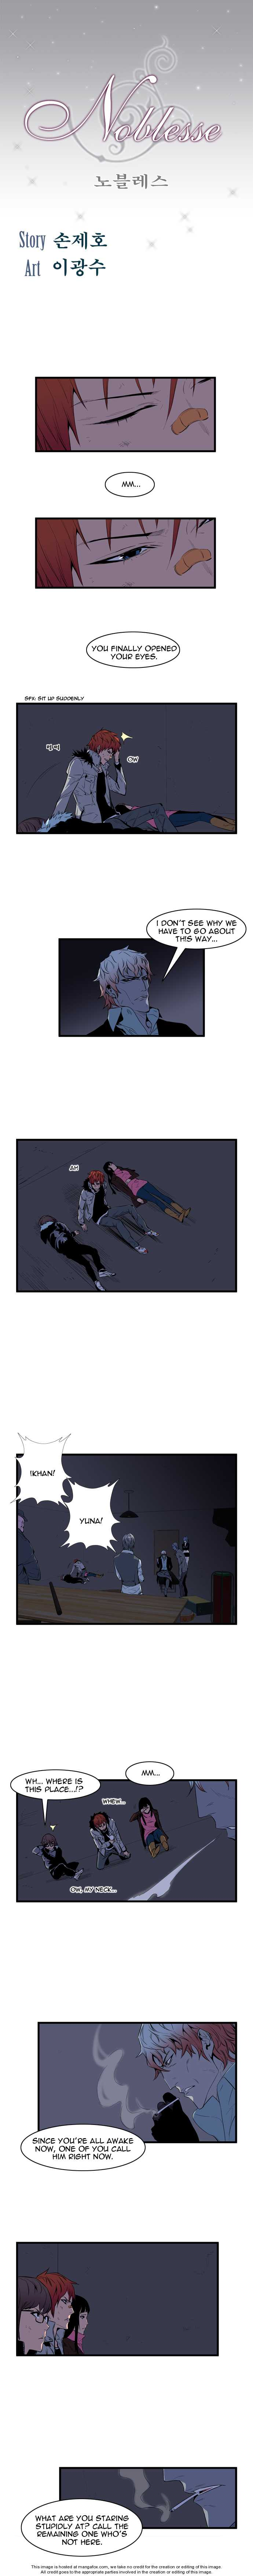 Noblesse 67 Page 1